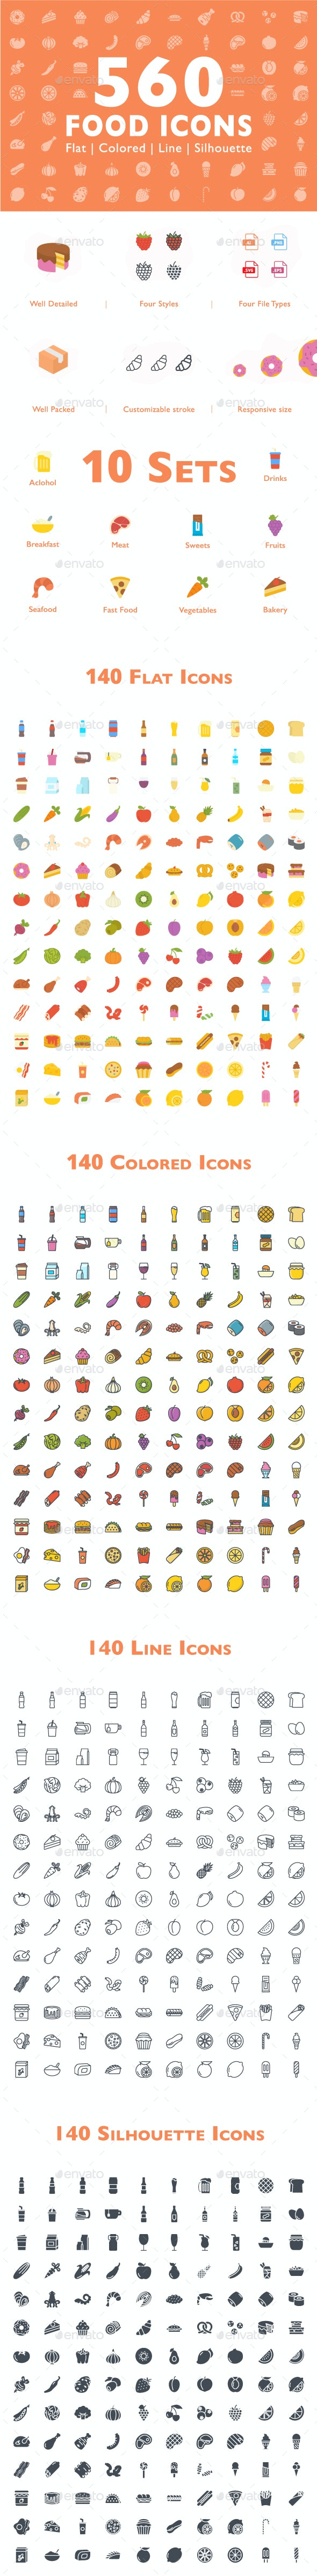 560 Food Icons - Food Objects